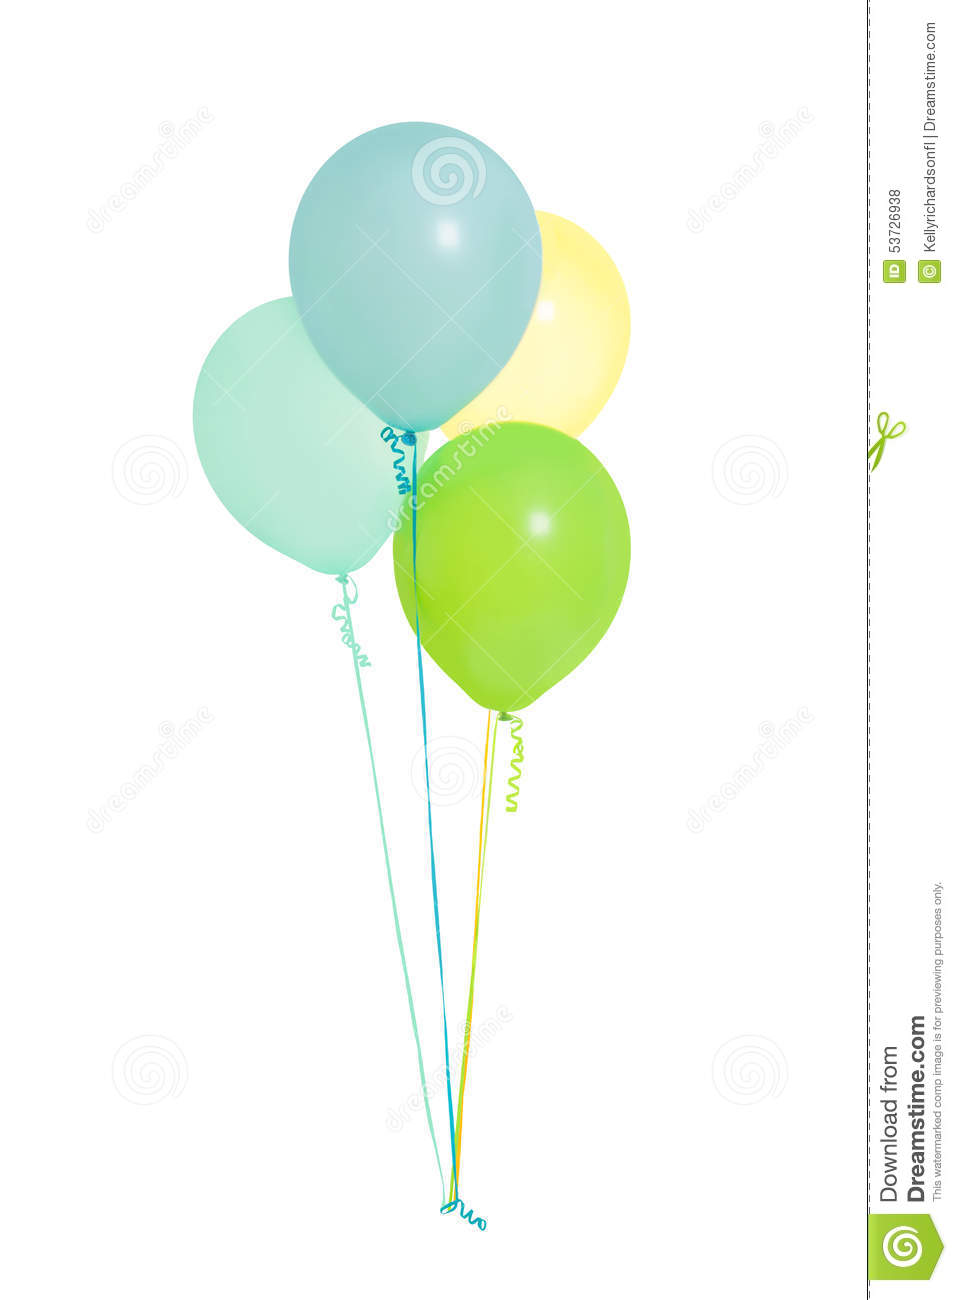 Green and blue balloons - Group Of Four Blue Green Yellow Balloons Isolated